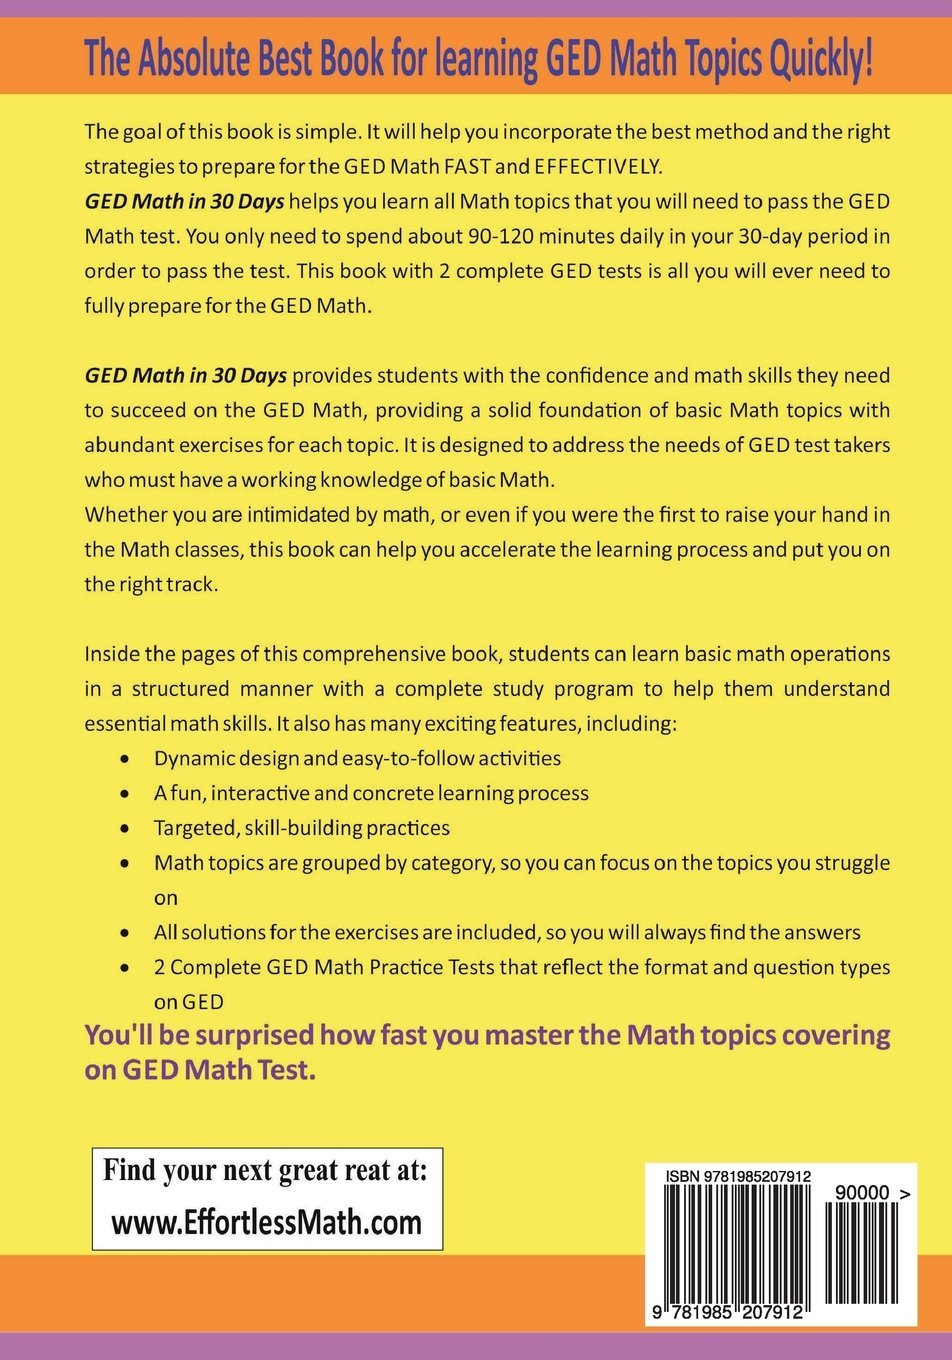 GED Math in 30 Days: The Ultimate Crash Course to Preparing for the GED  Math Test: Reza Nazari, Ava Ross: 9781985207912: Amazon.com: Books